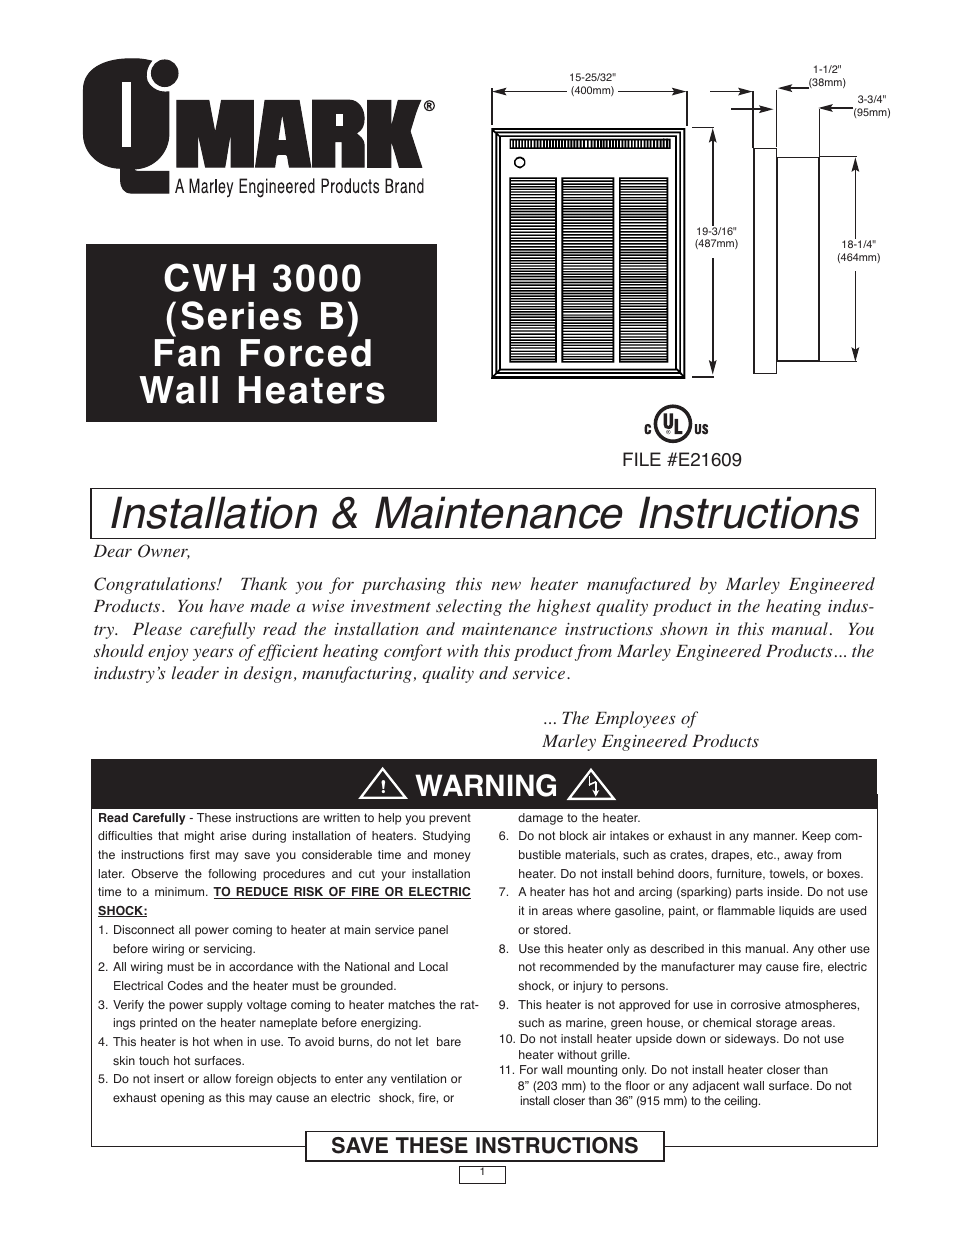 Qmark cwh3000 series commercial fan forced wall heaters user qmark cwh3000 series commercial fan forced wall heaters user manual 16 pages sciox Image collections